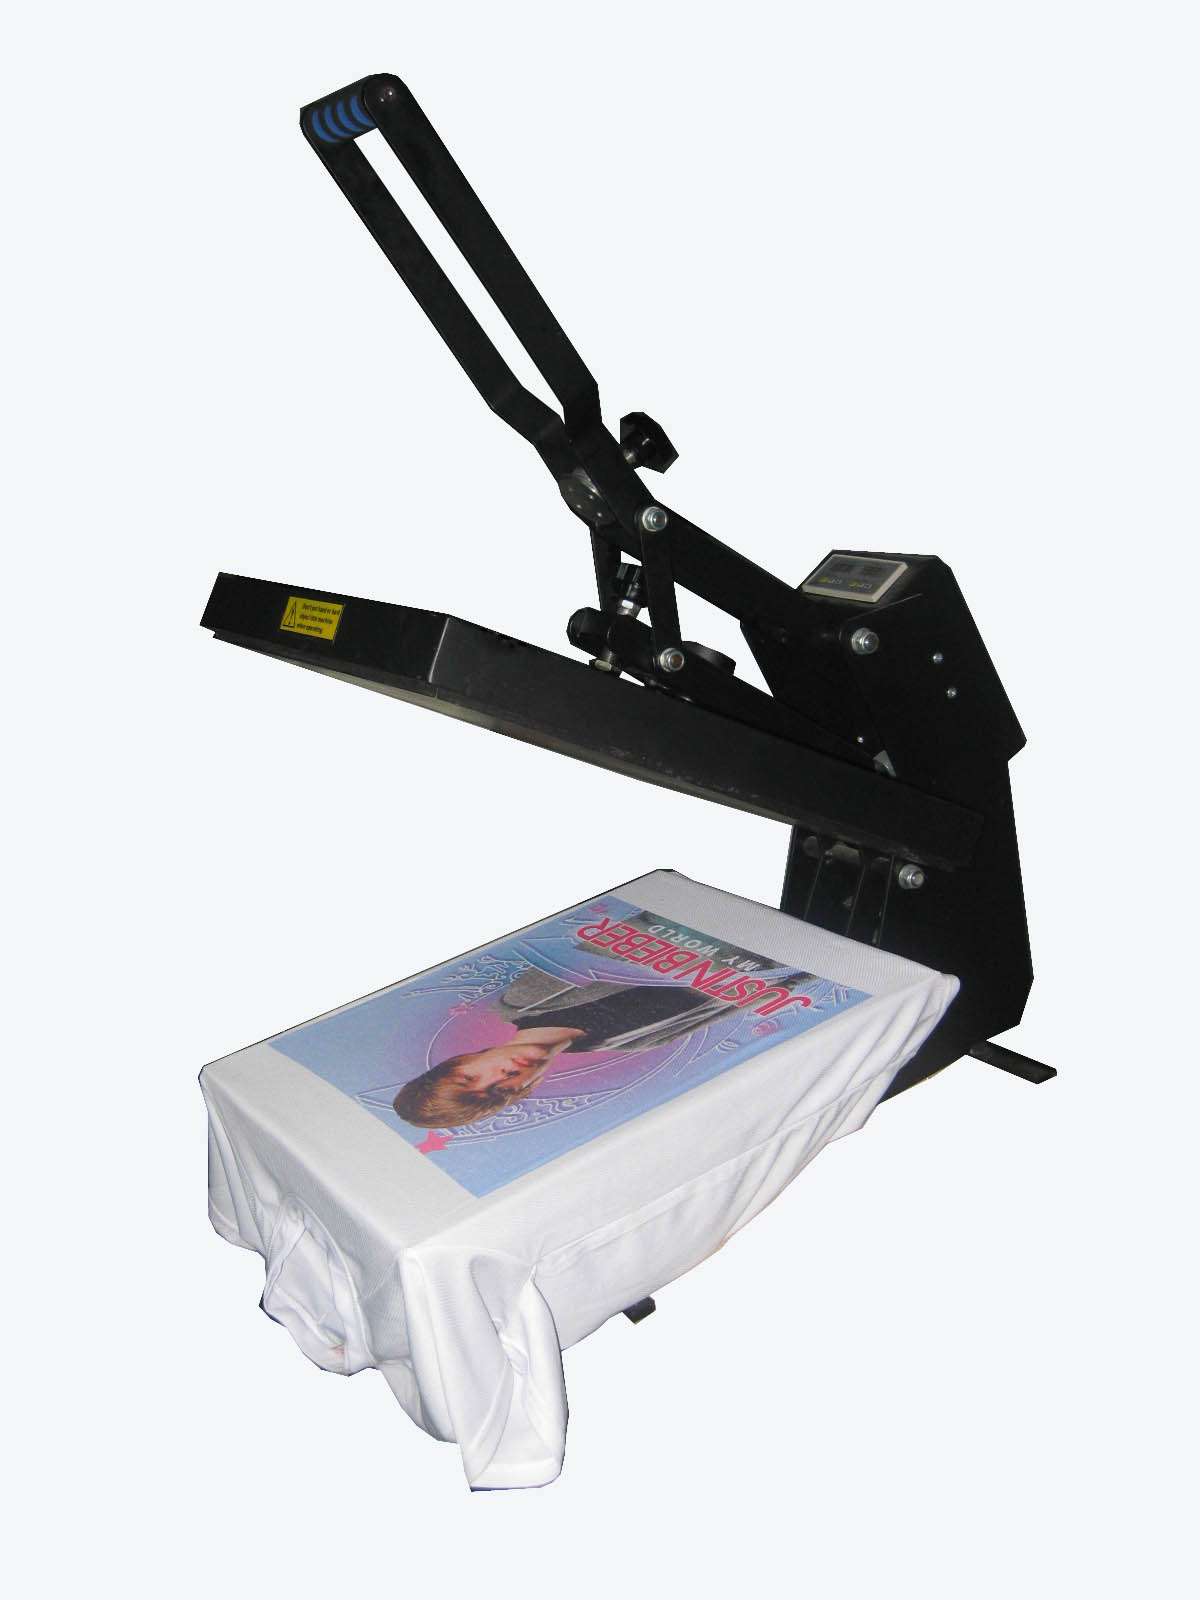 Heat Press Machine For T-shirt At 90k (38*38) - Art ...